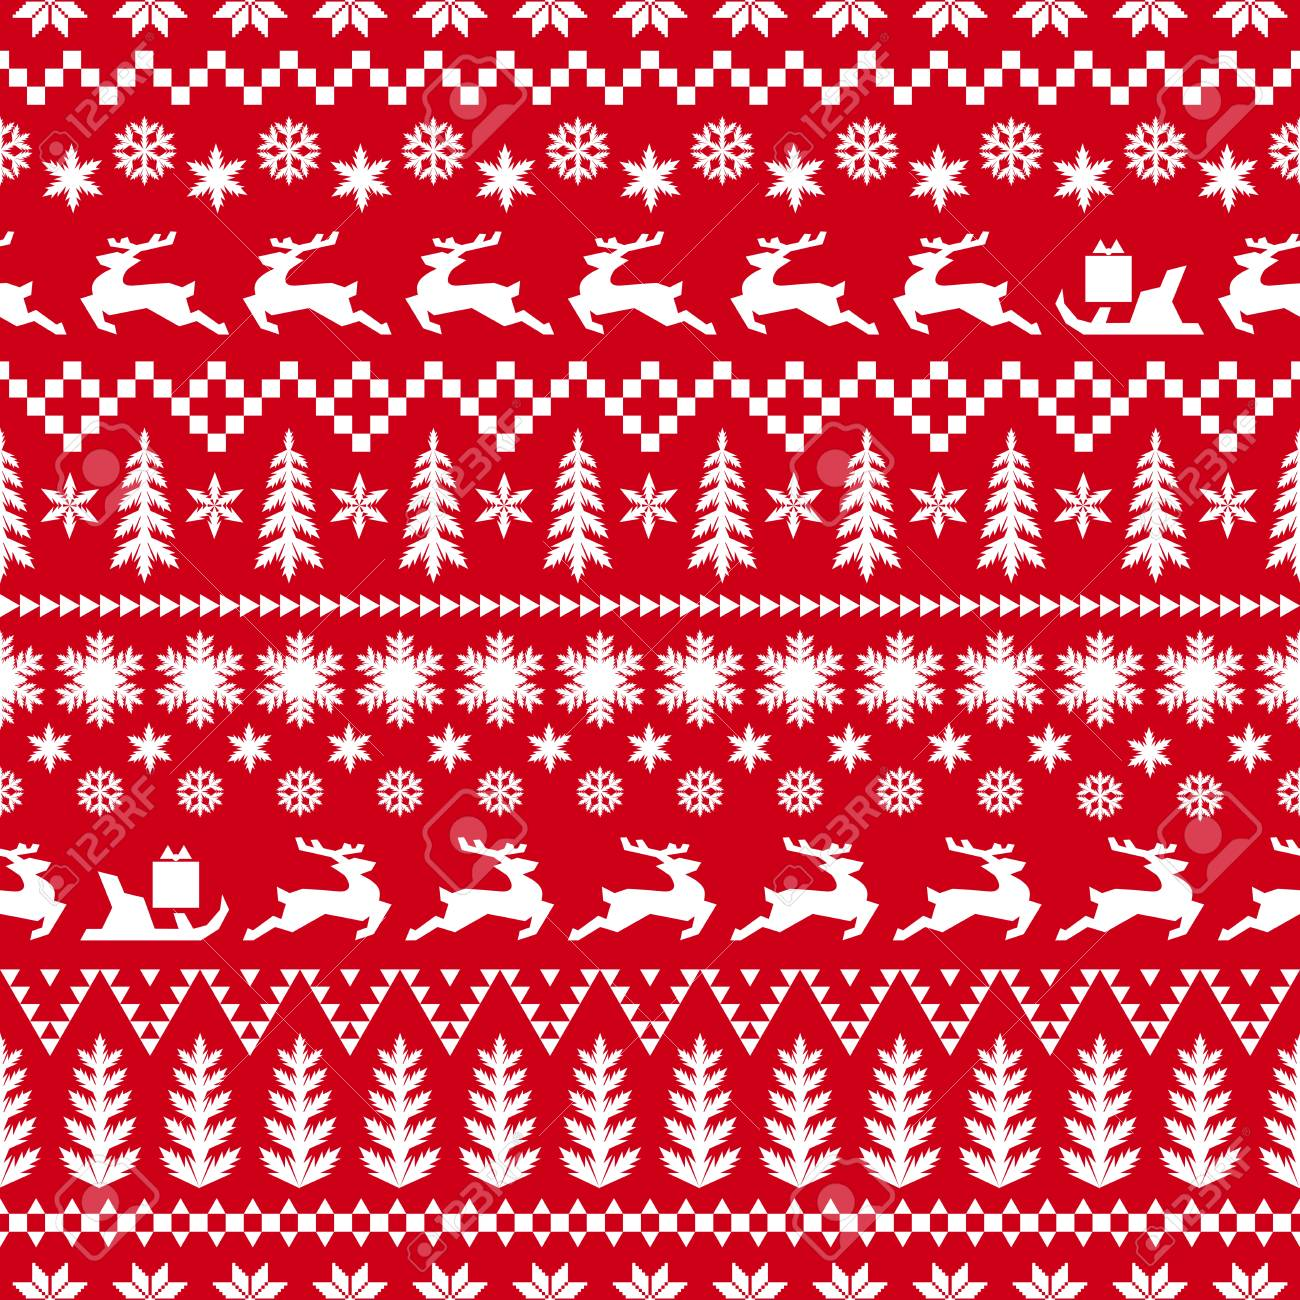 Christmas Pattern.Christmas Pattern In Classic Red And White Colors Winter Illustration